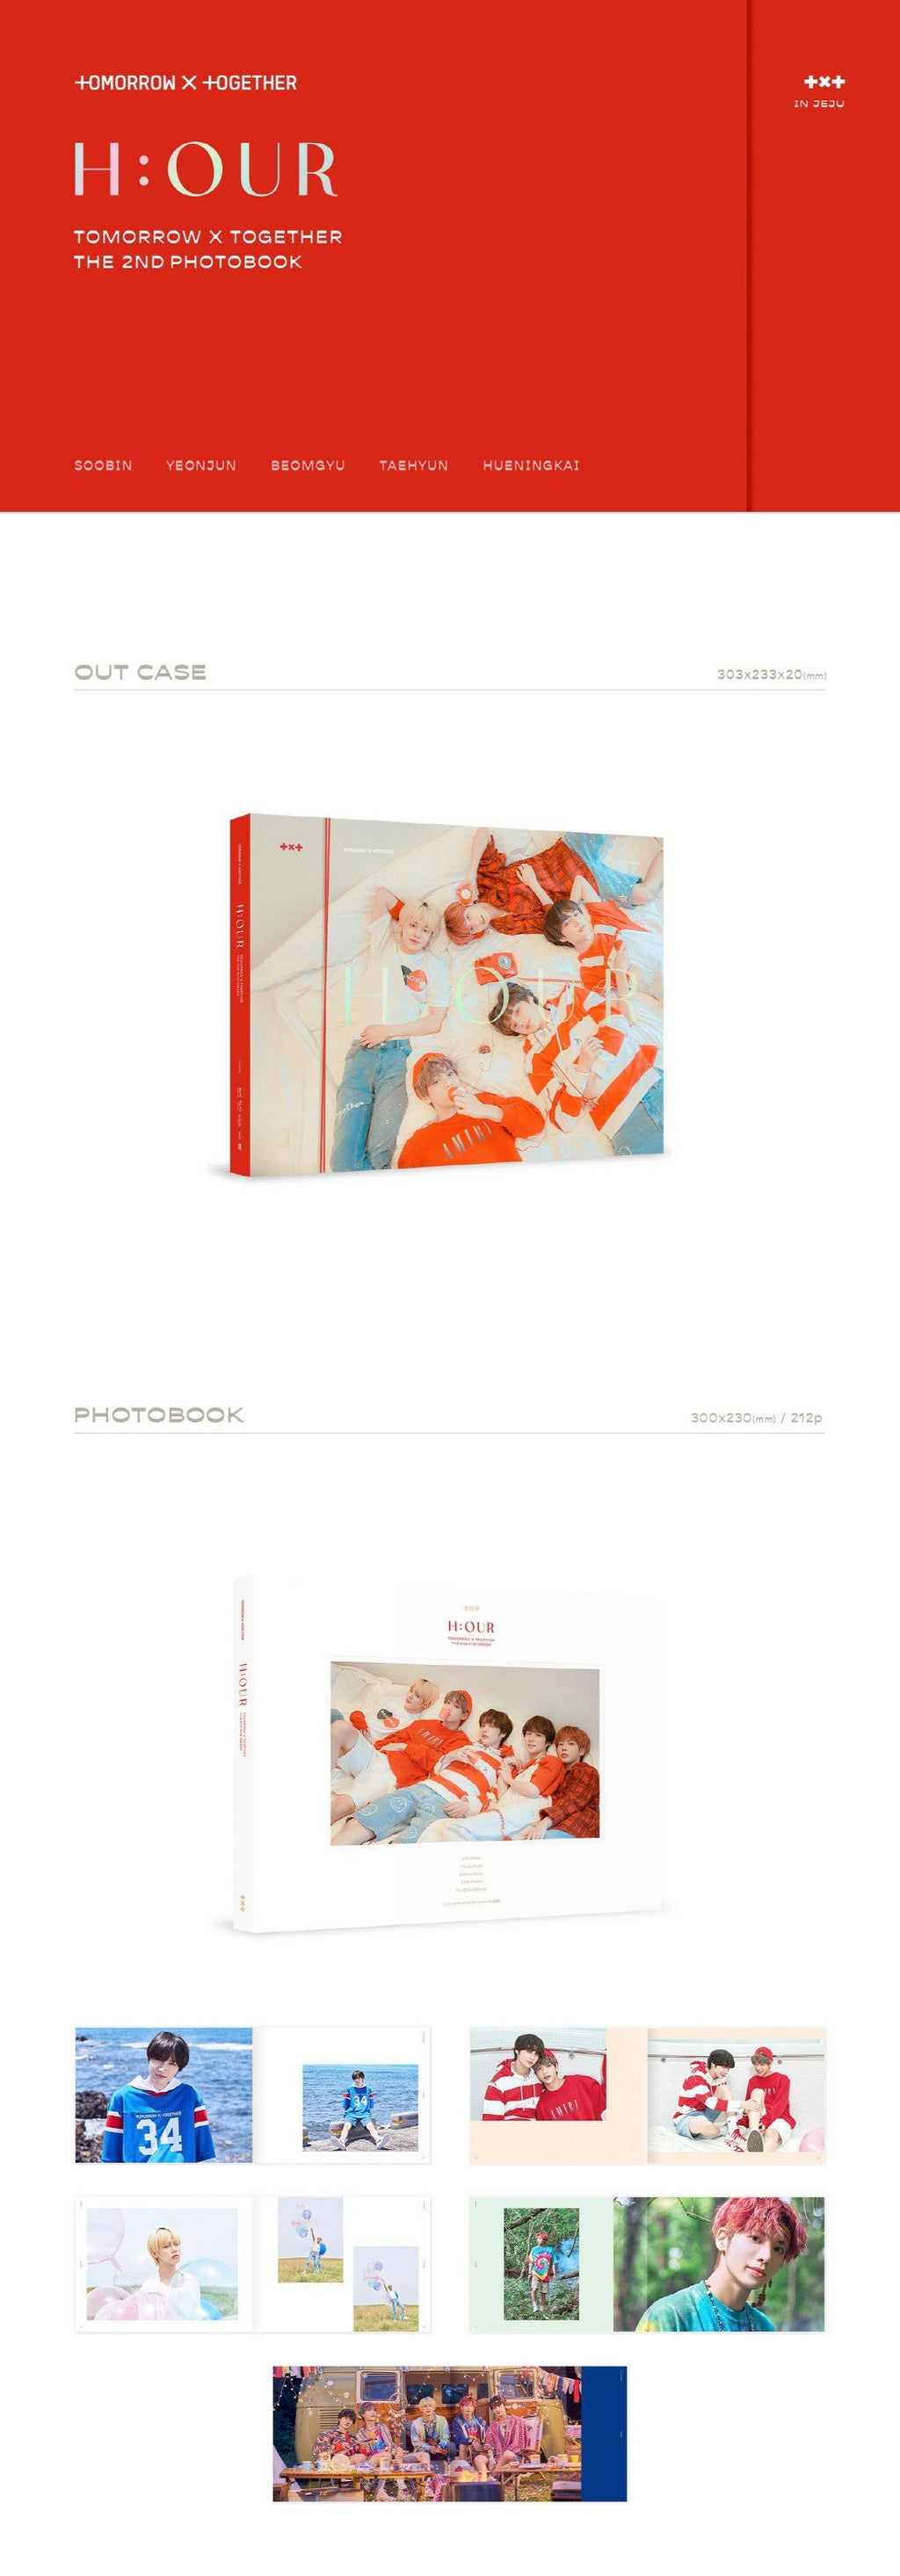 TXT (Tomorrow X Together) - The 2nd Photobook H:OUR - Pre-Order